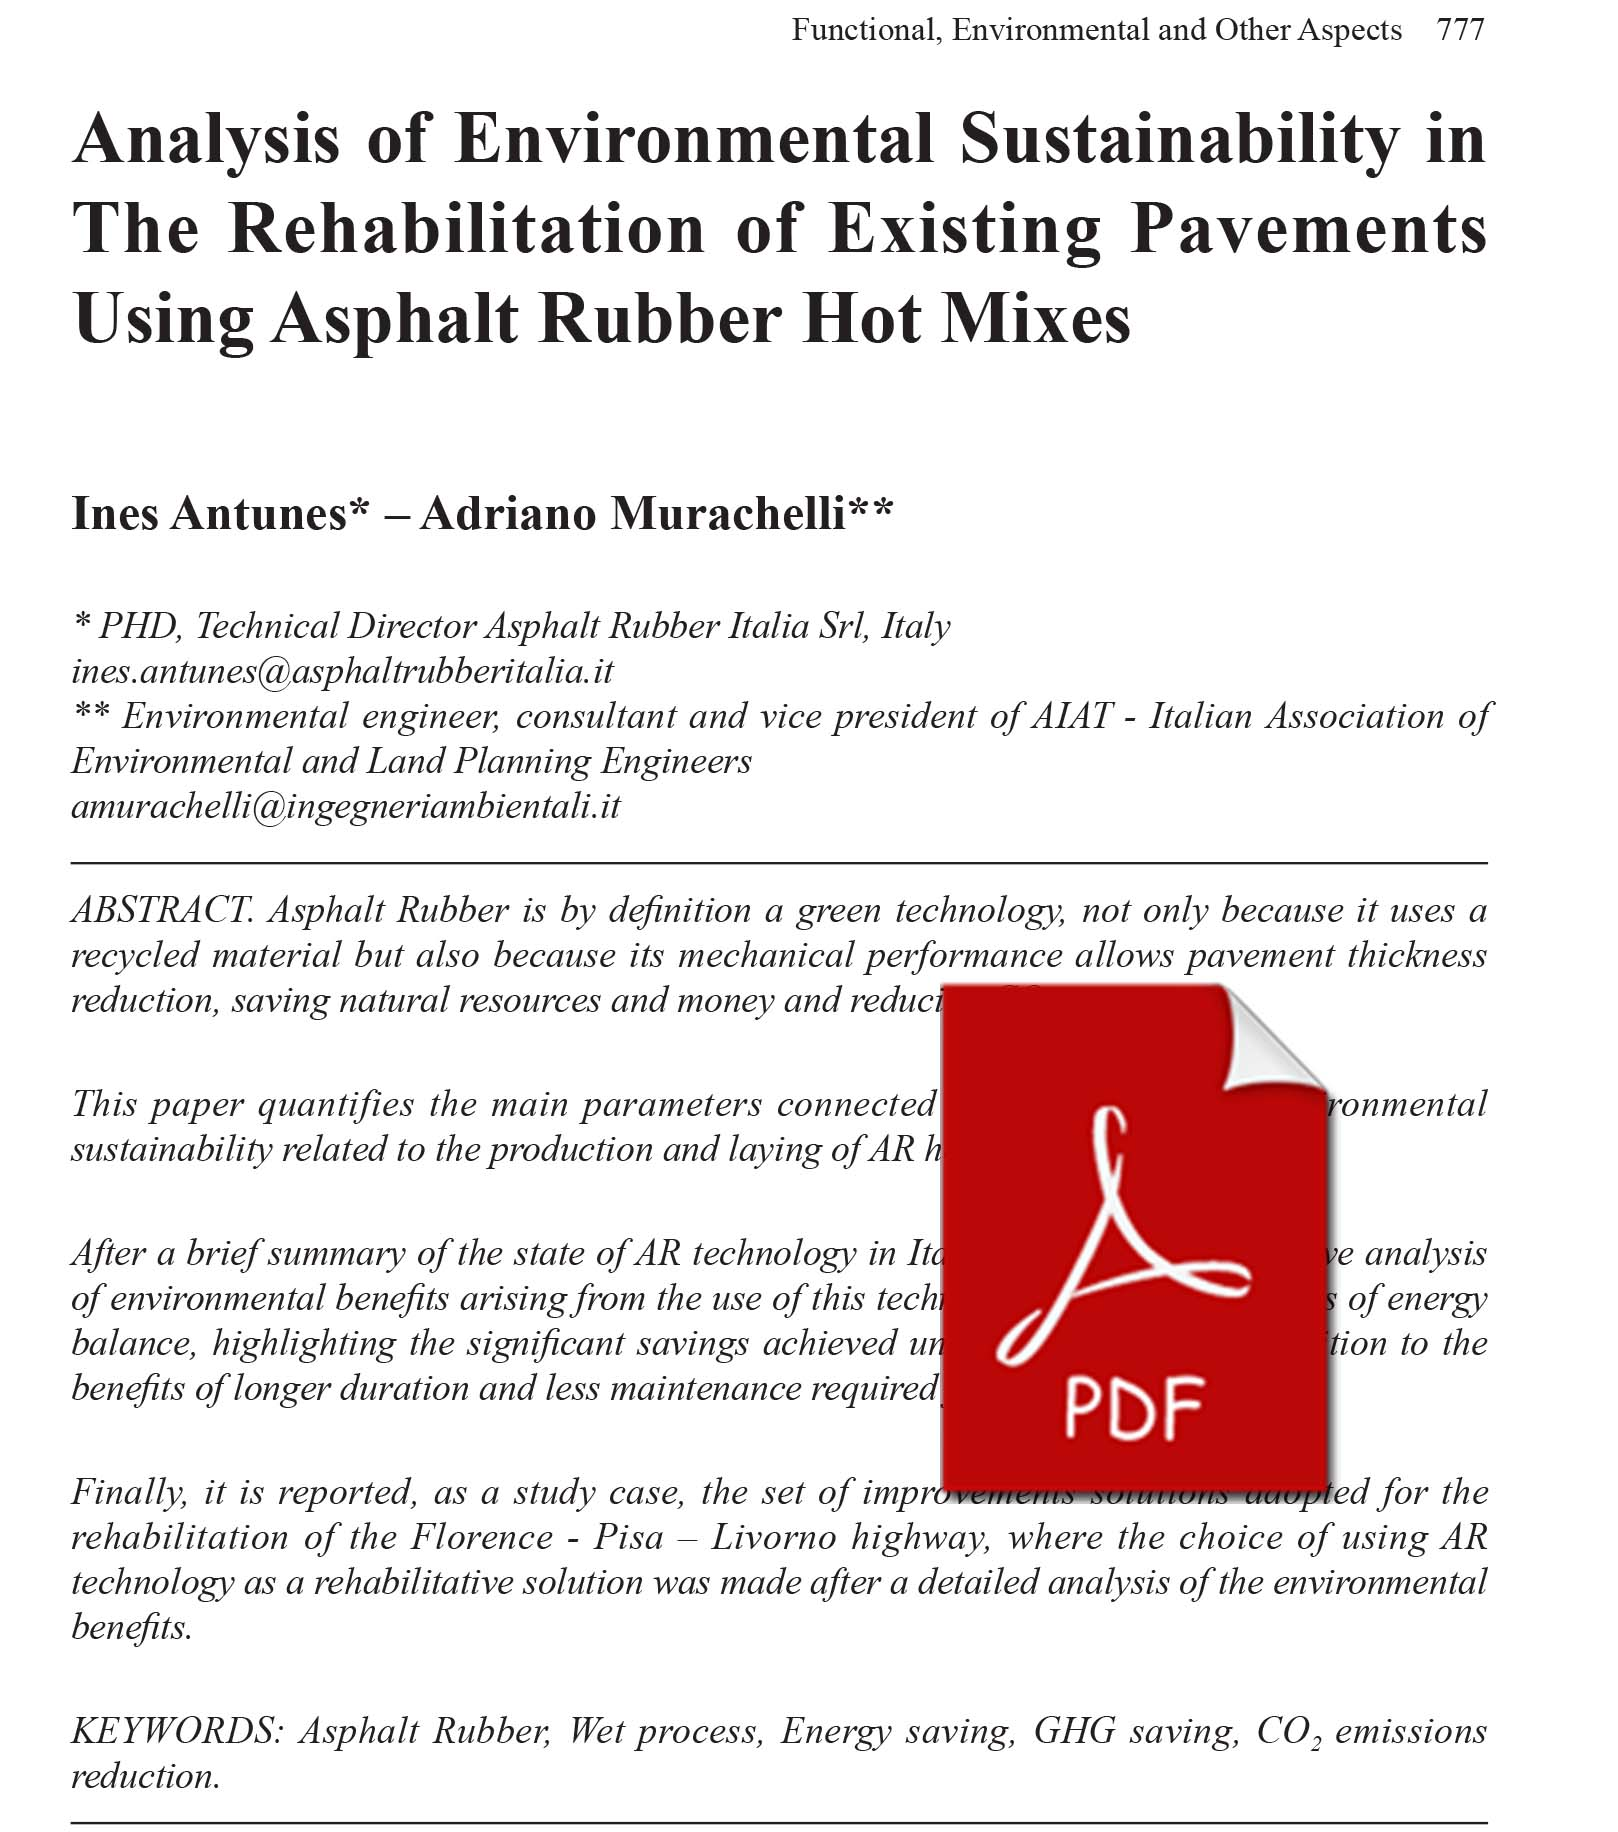 analysis of environmental sustainability in the rehabilitation of